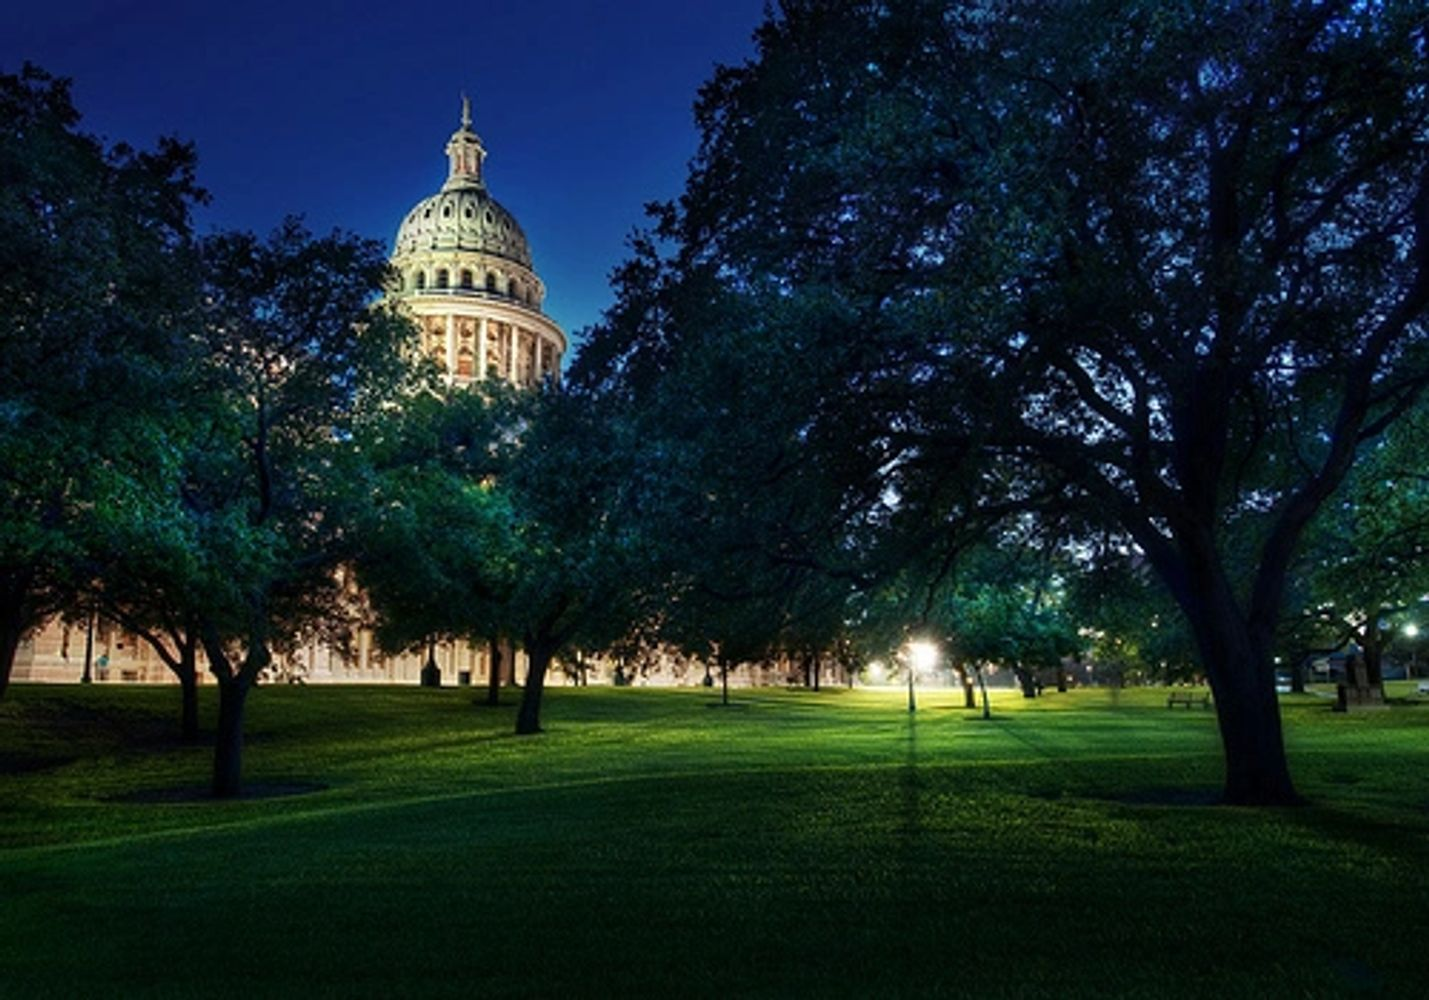 The Texas capitol at dusk. From Trey Ratcliff, www.StuckInCustoms.com